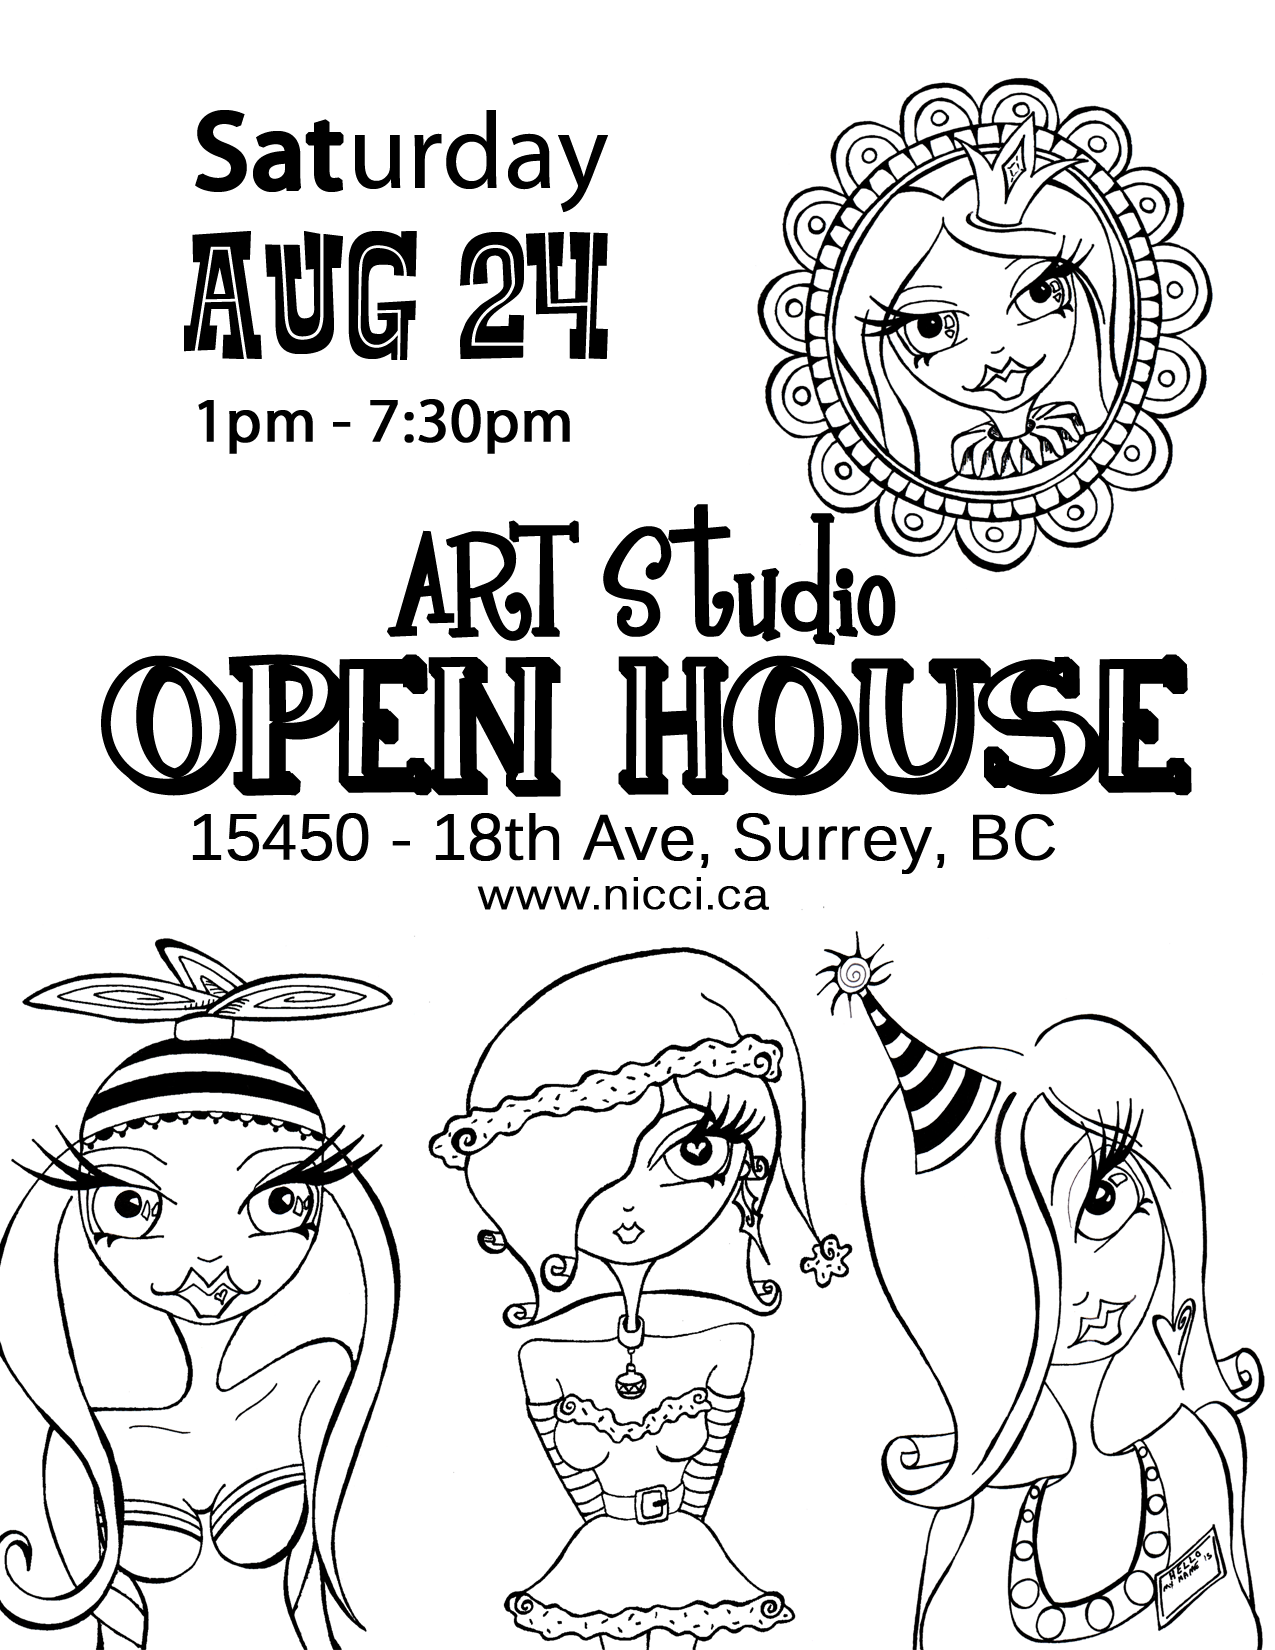 Art-Studio-open-house-2013